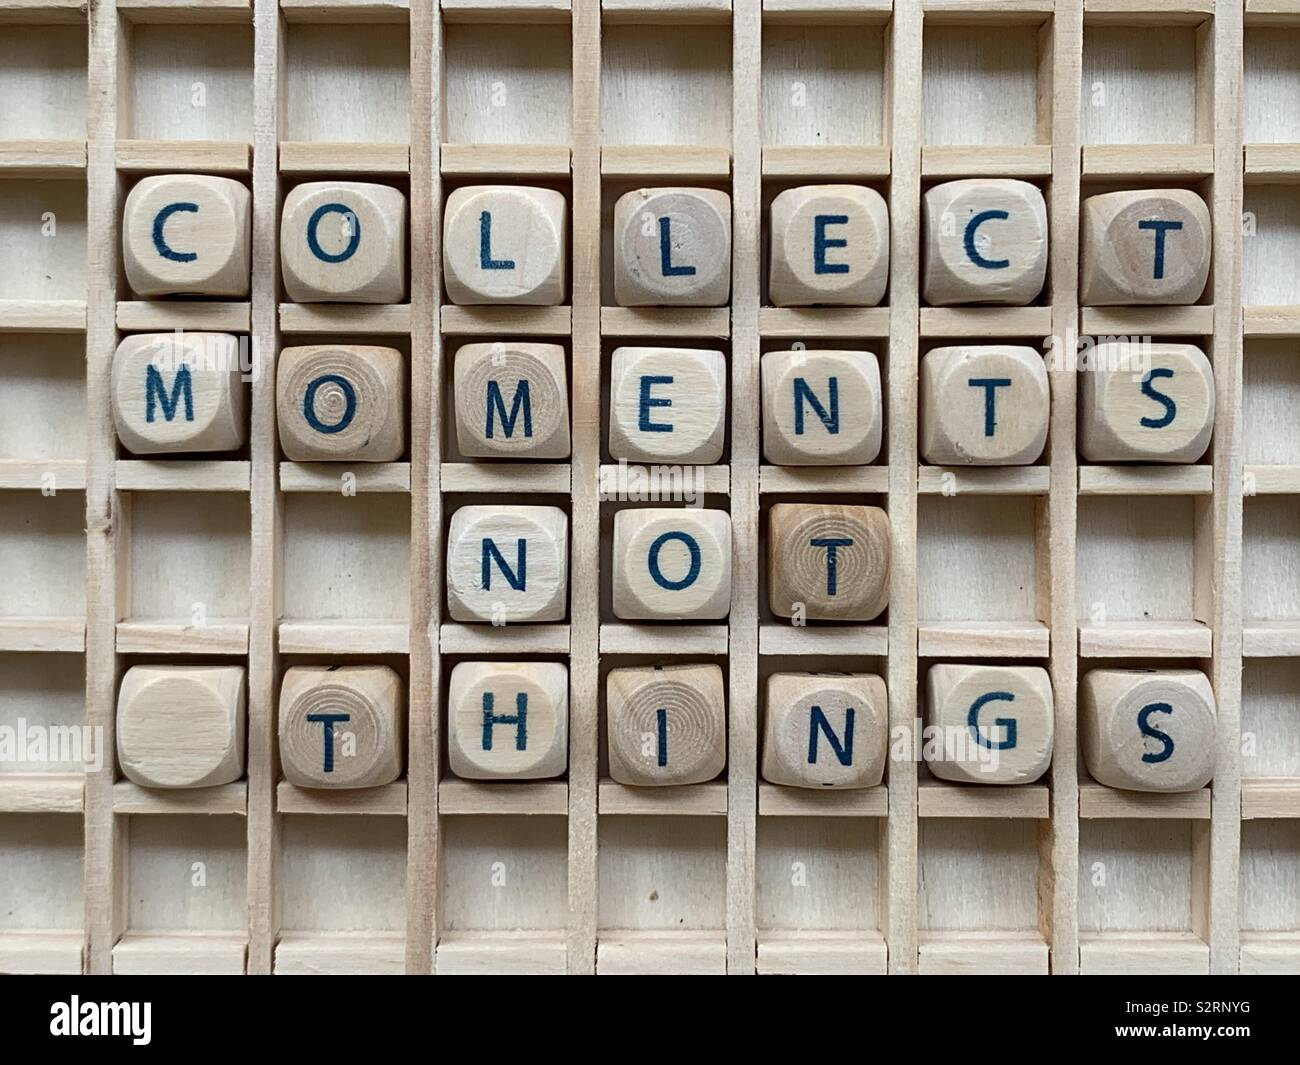 Collect moments not things - Stock Image